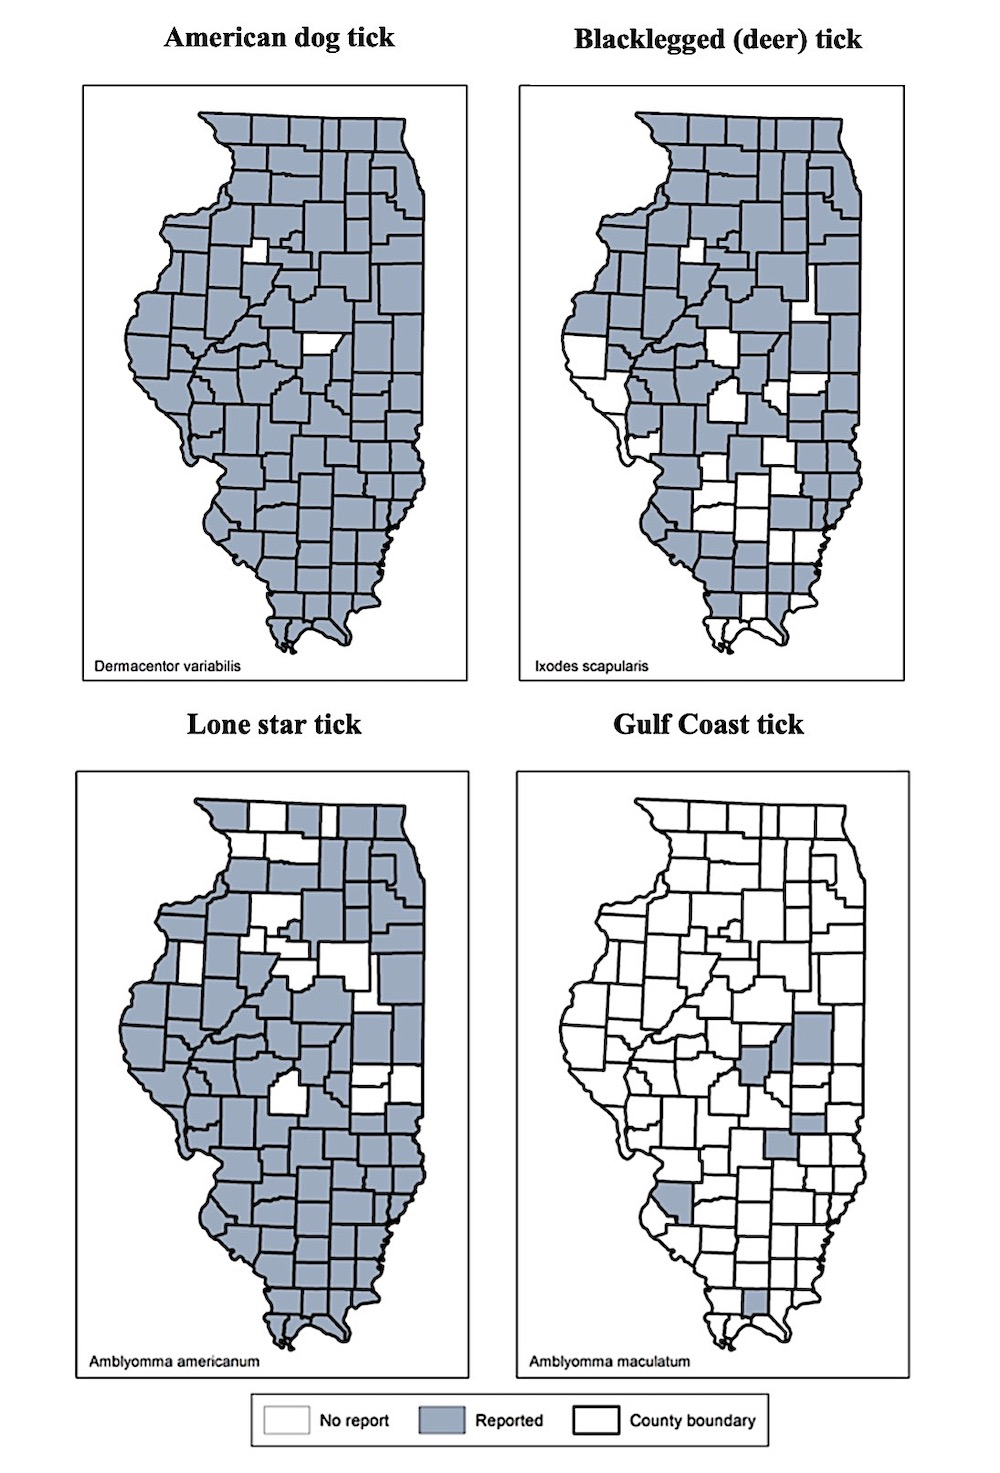 A gray scale graphic with four maps of Illinois indicating the presence of the American dog tick, the Blacklegged (deer) tick, the Lone star tick, and the Gulf Coast tick in Illinois.